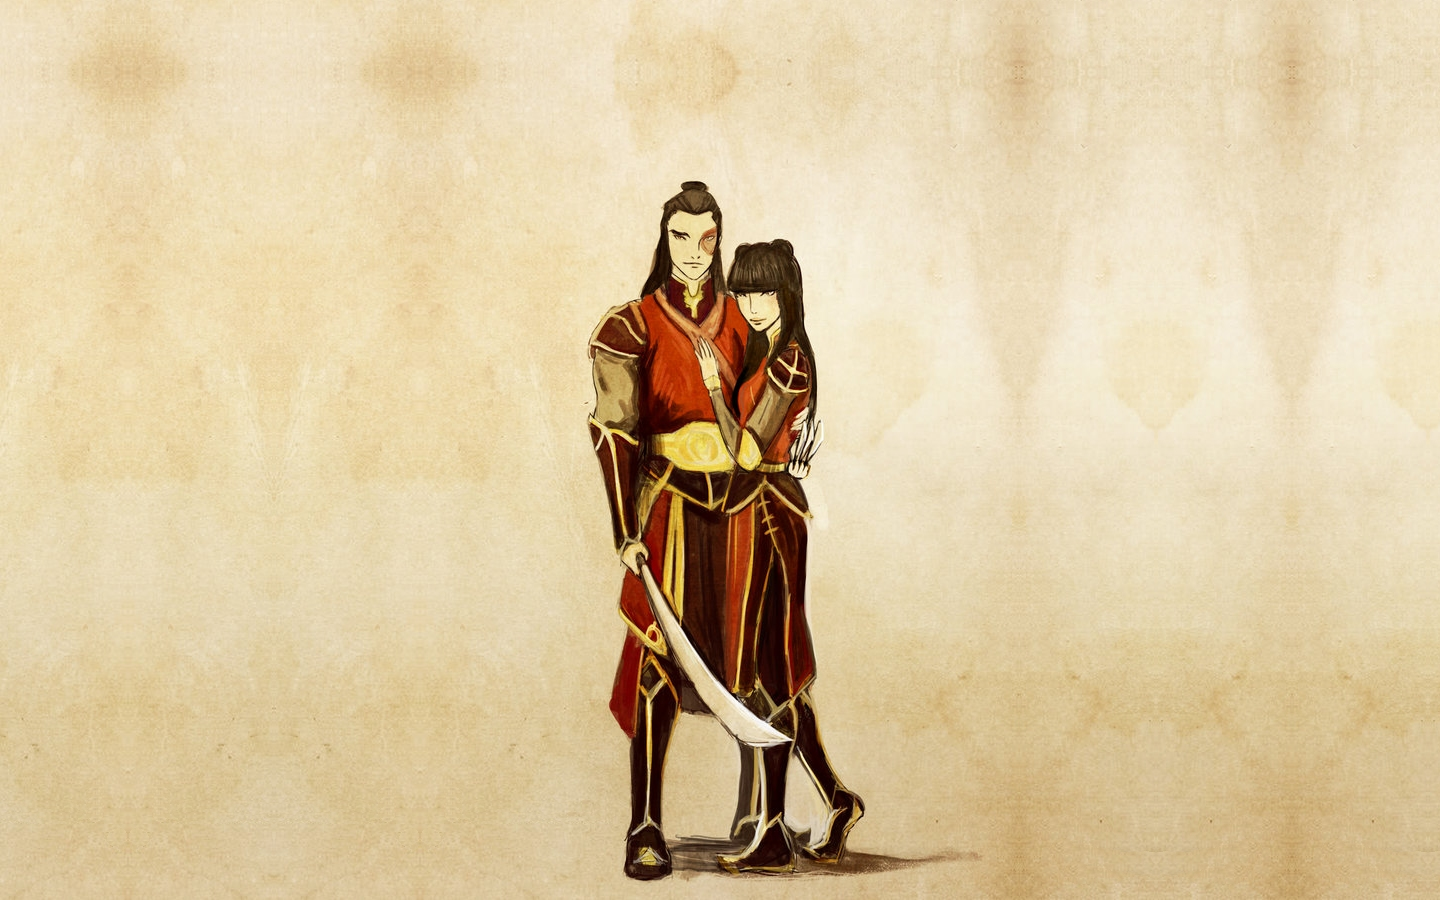 Avatar The Last Airbender Wallpaper Zuko And Mai Fanart 441546